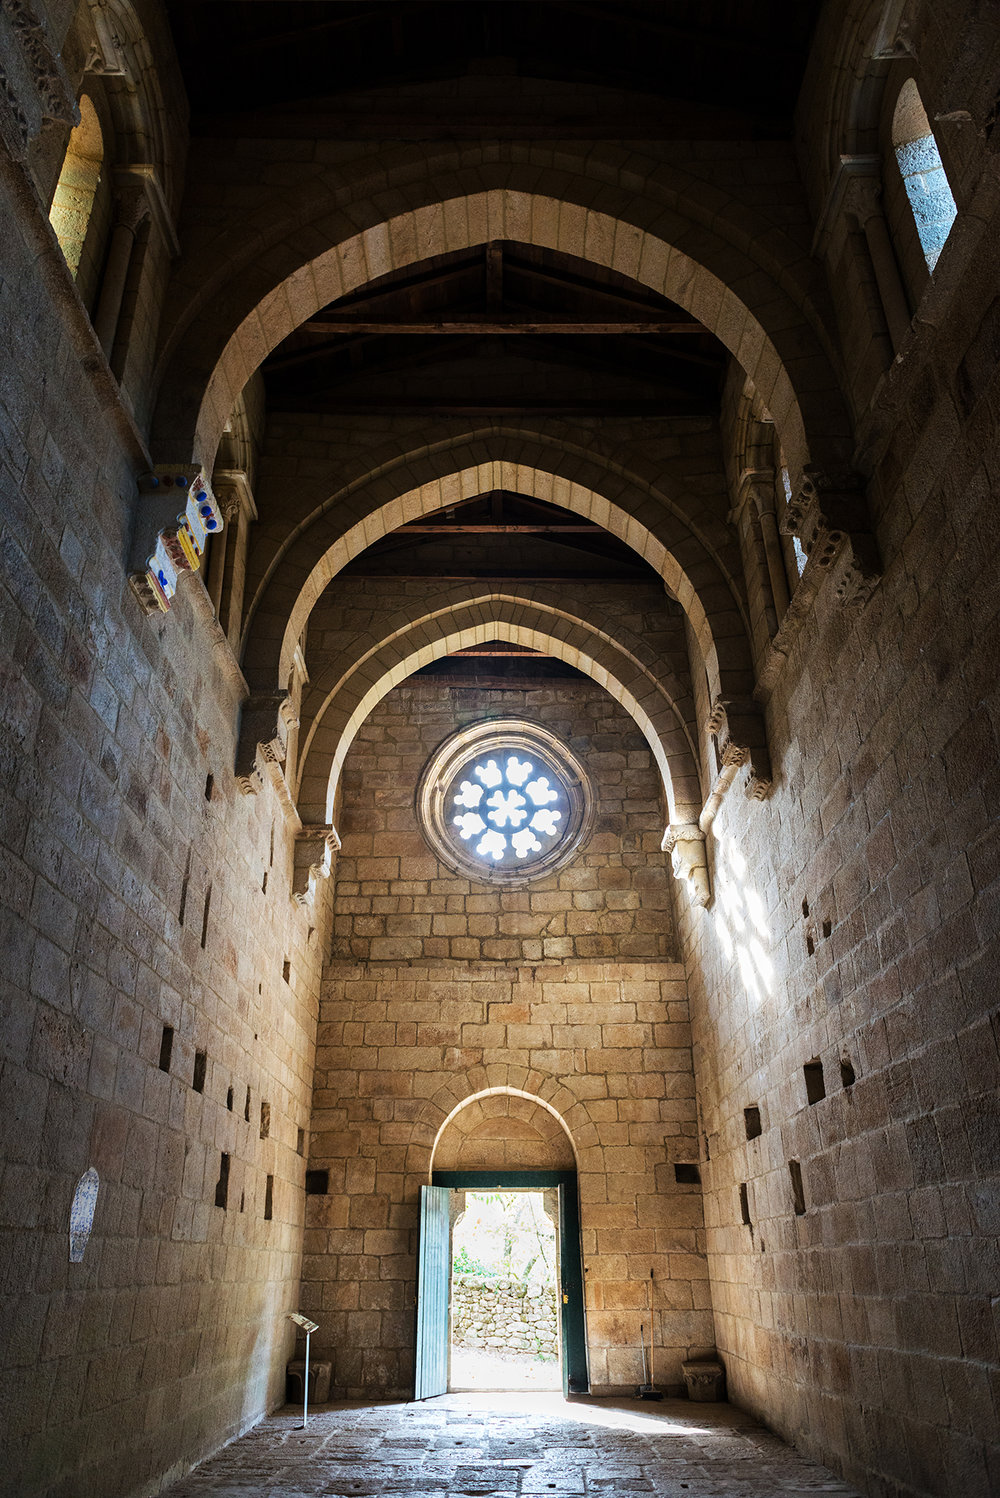 Inside view of the Romanesque Monastery of Santa Cristina de Ribas de Sil